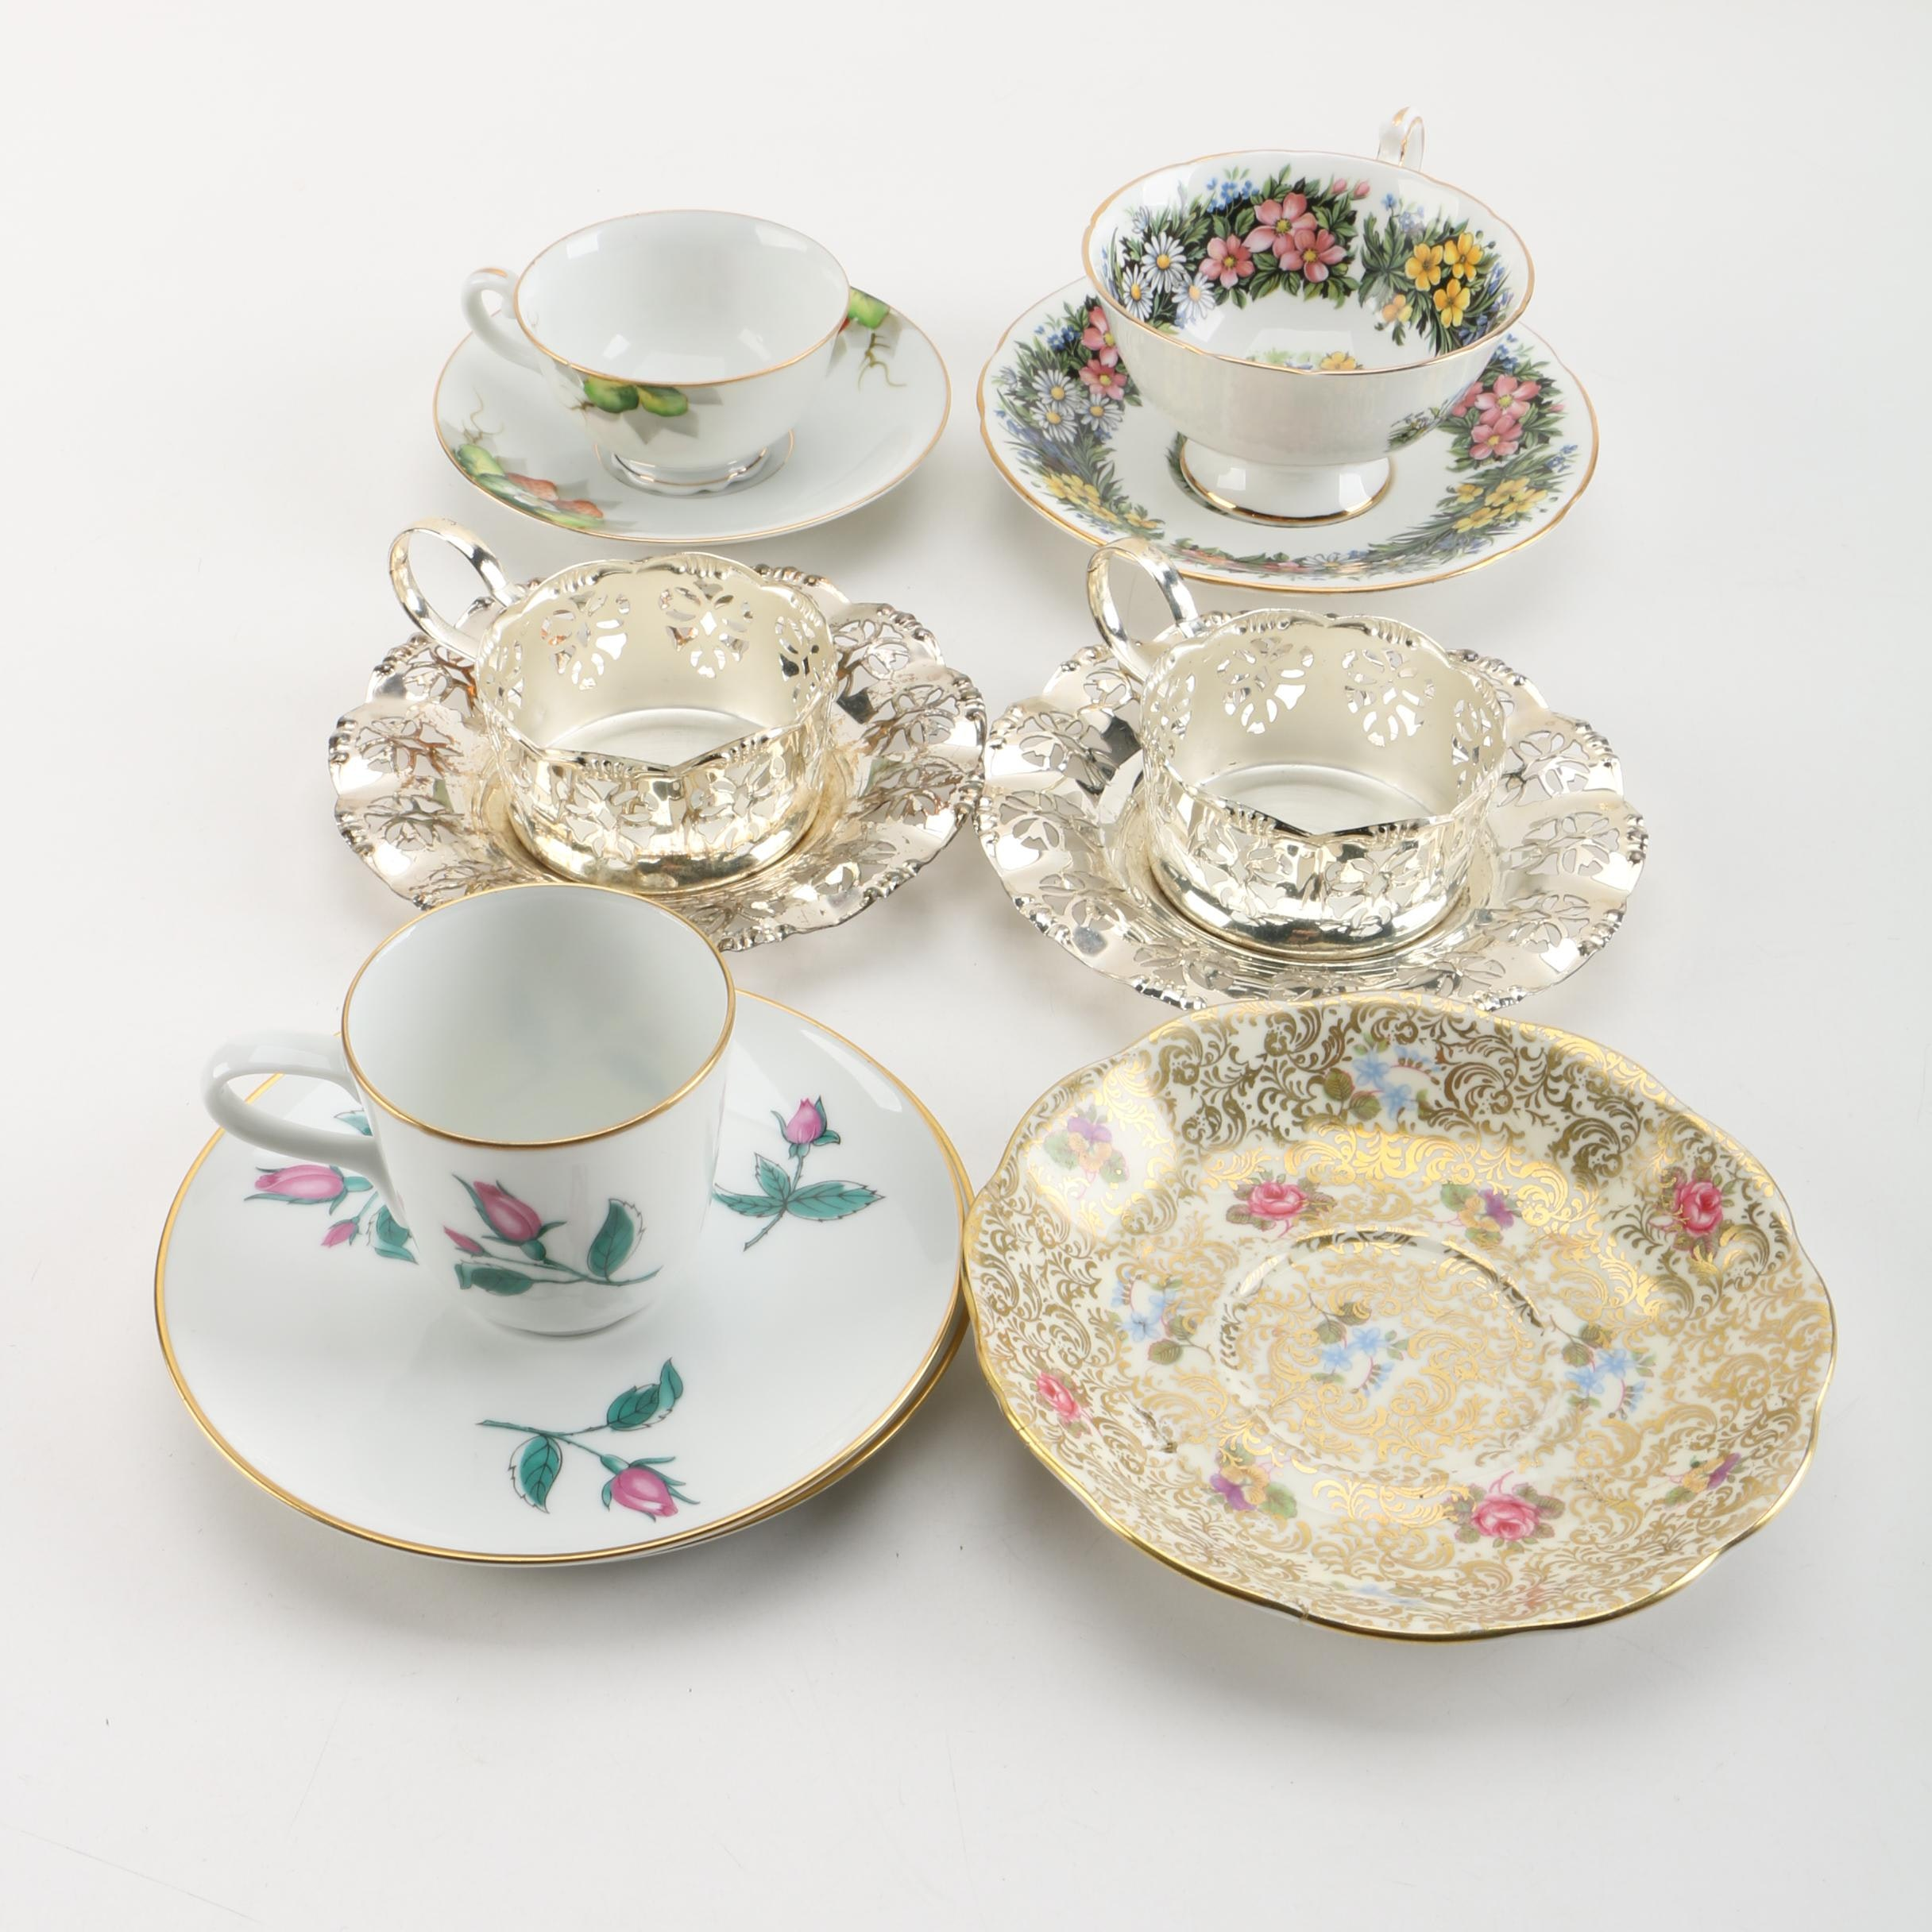 & Silver Plate Demitasse Cup Holders and Assorted Tea Cups and Saucers ...